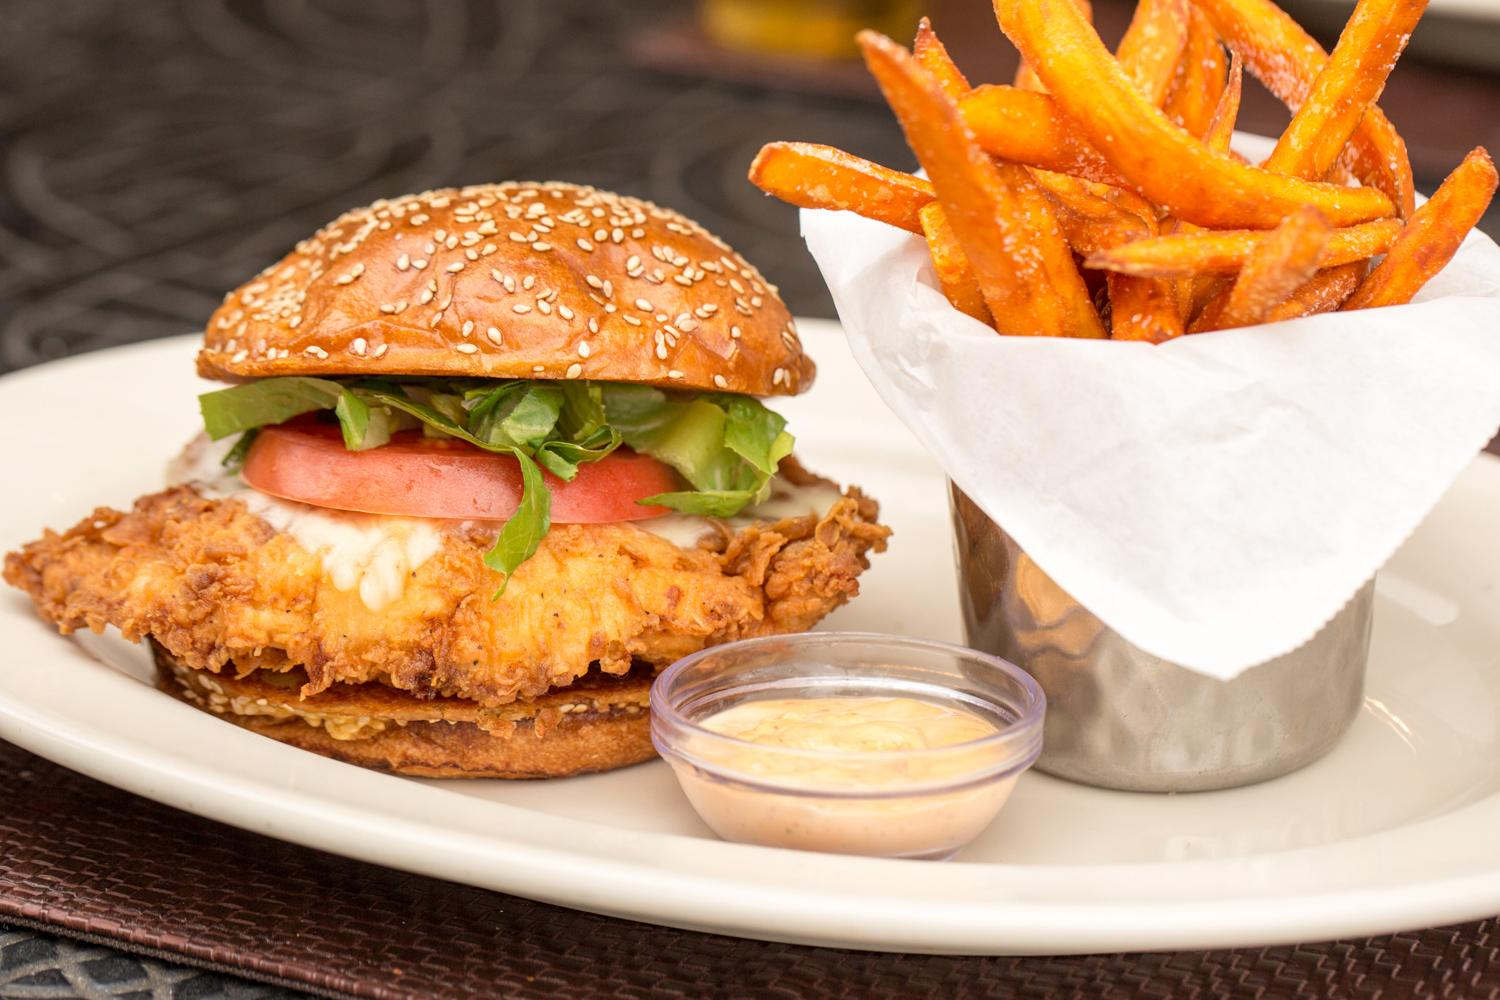 10 top chain chicken sandwiches ranked - The Cheesecake Factory 2017-11-03 18:00